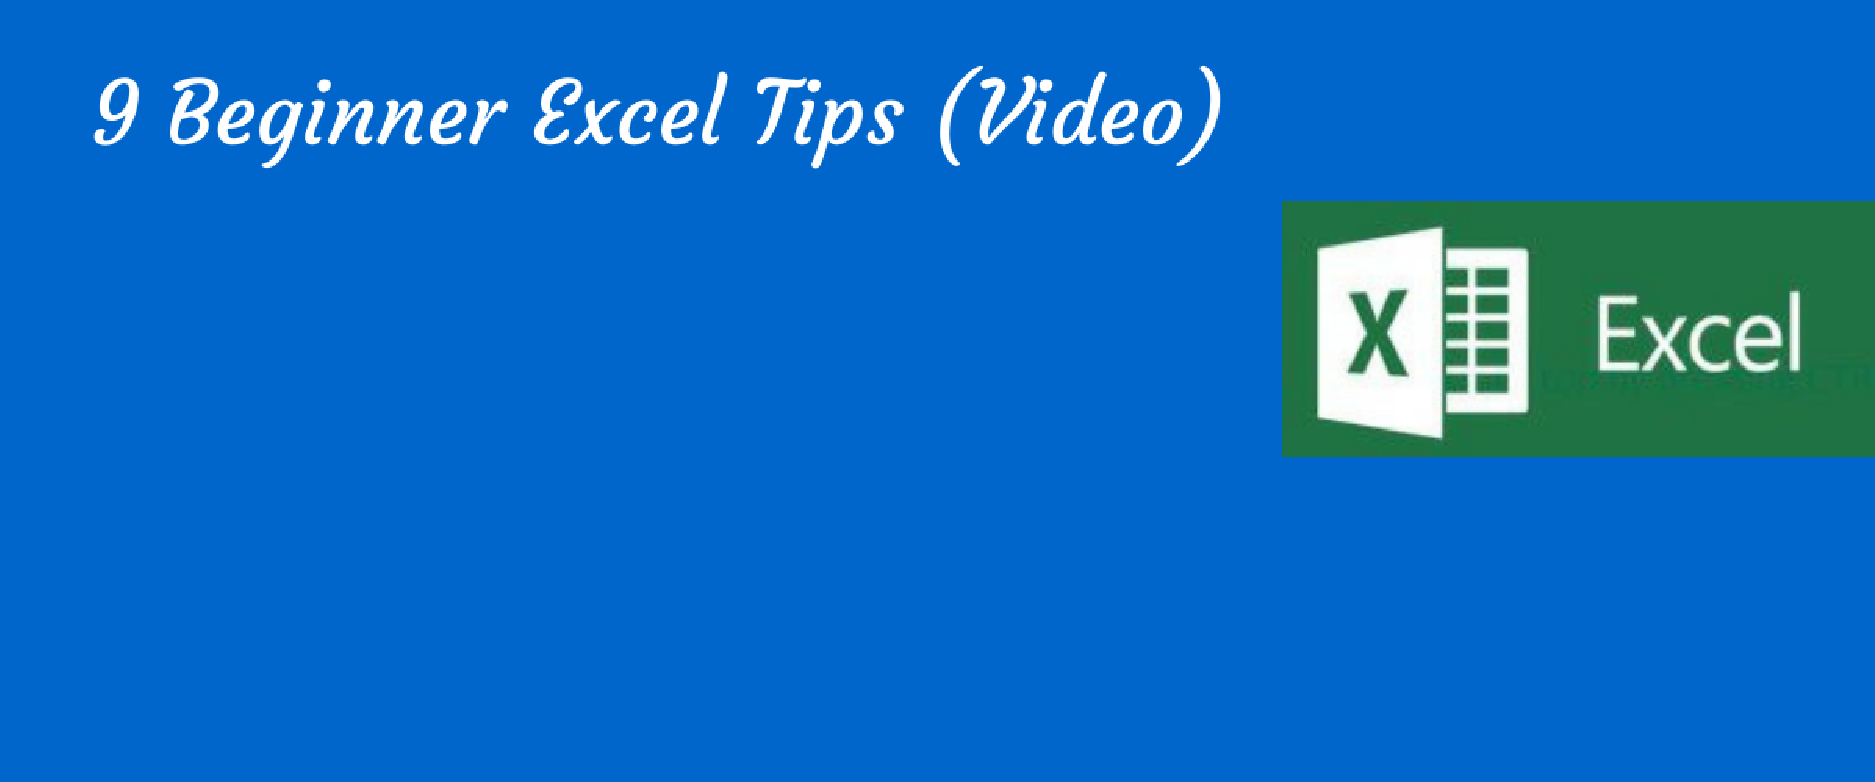 Beginner Excel Tips